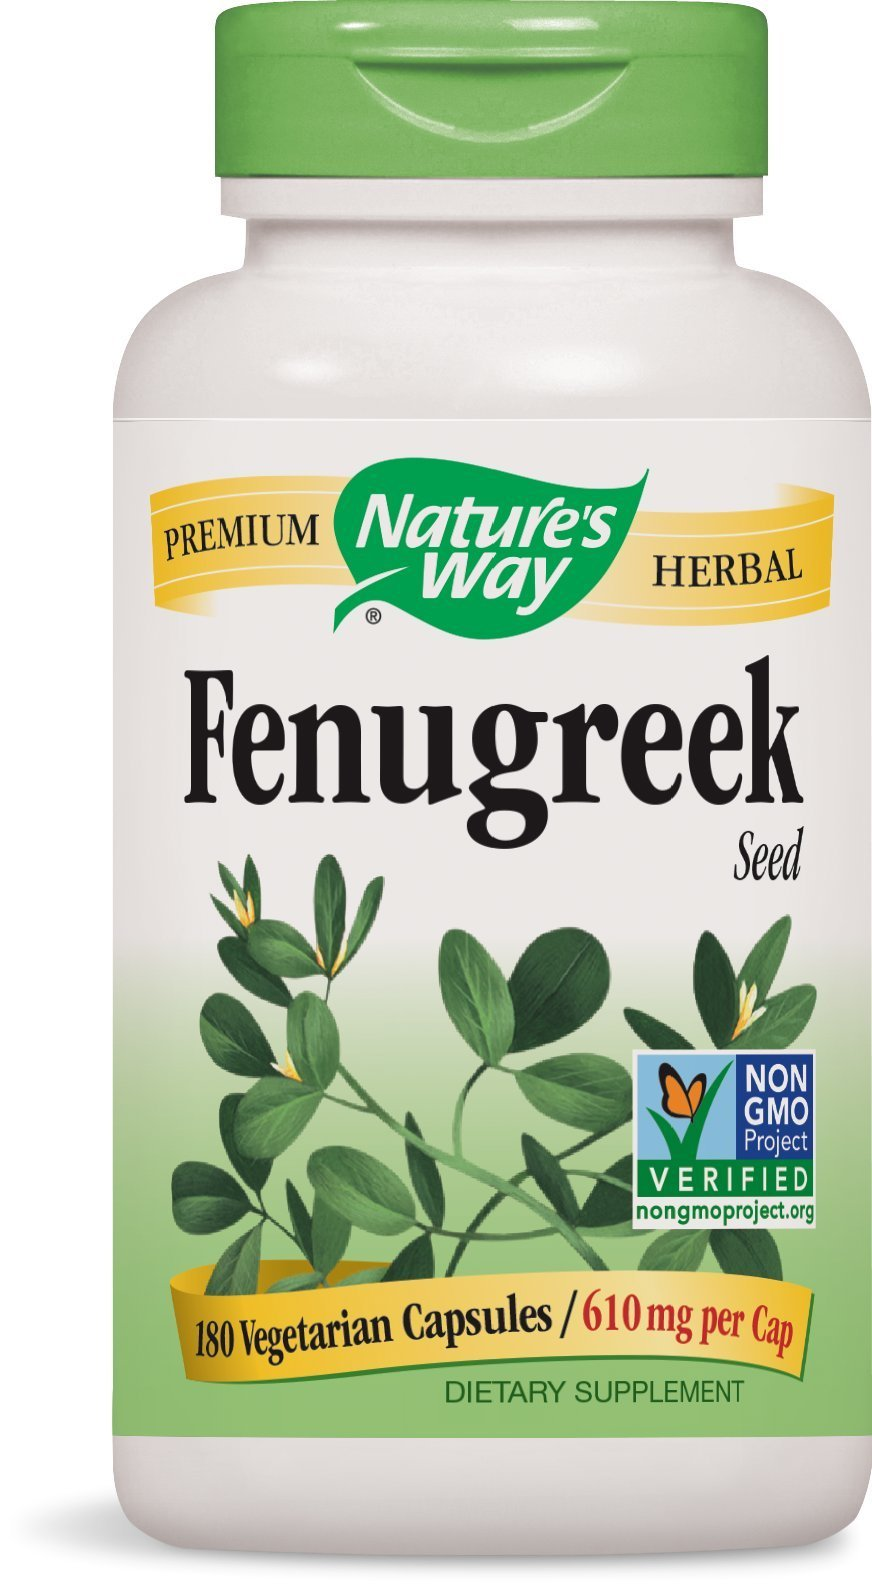 Natures Way Fenugreek Seed, 610 milligrams Per Cap, 180 Vegetarian Capsules